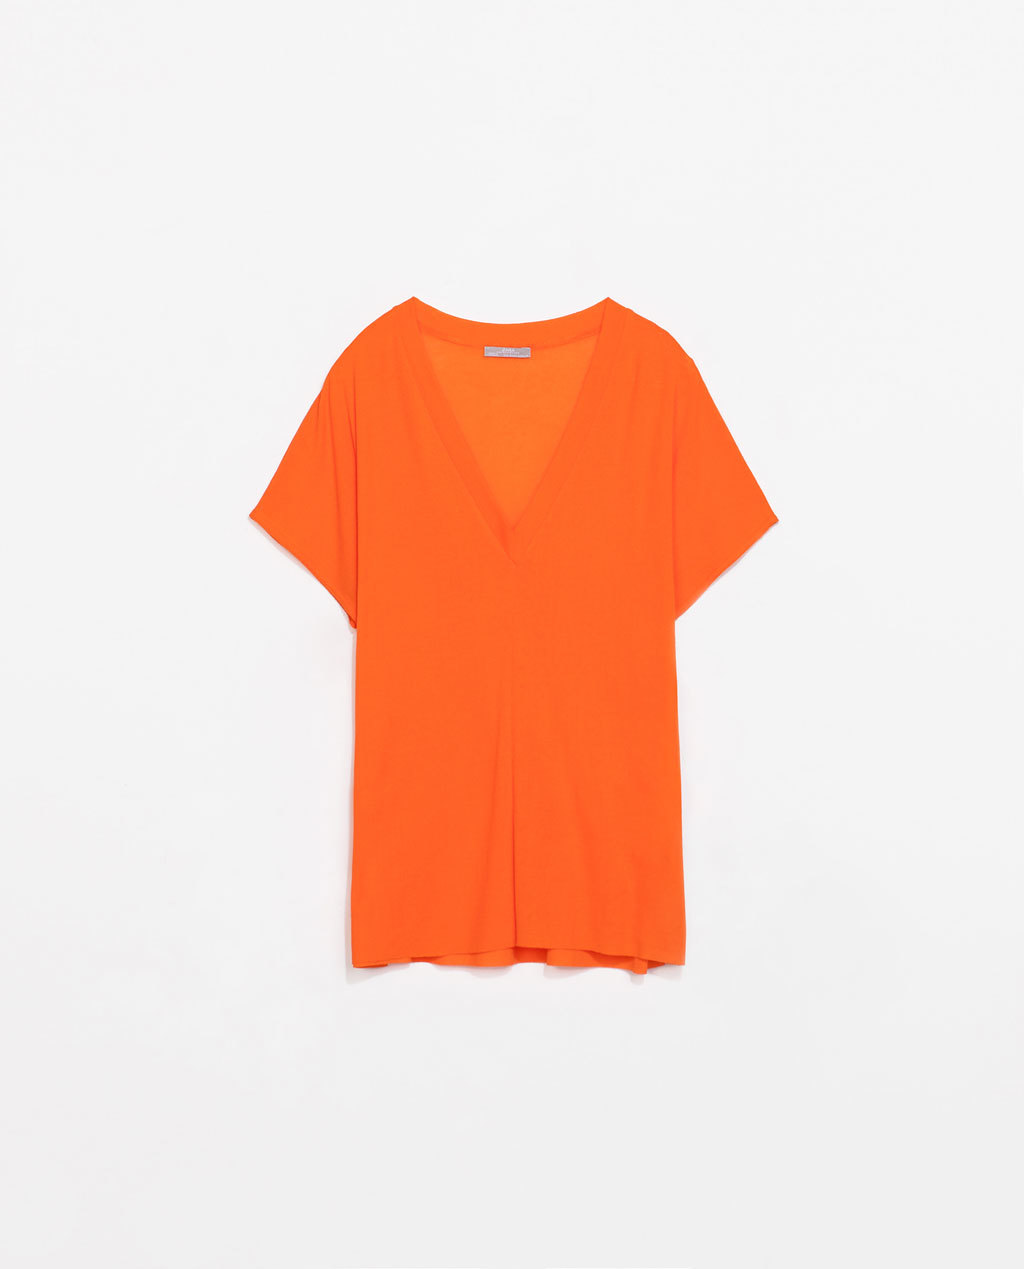 V Neck T Shirt - neckline: low v-neck; pattern: plain; style: t-shirt; predominant colour: bright orange; occasions: casual; length: standard; fibres: cotton - 100%; fit: loose; sleeve length: short sleeve; sleeve style: standard; pattern type: fabric; texture group: jersey - stretchy/drapey; trends: hot brights; season: s/s 2014